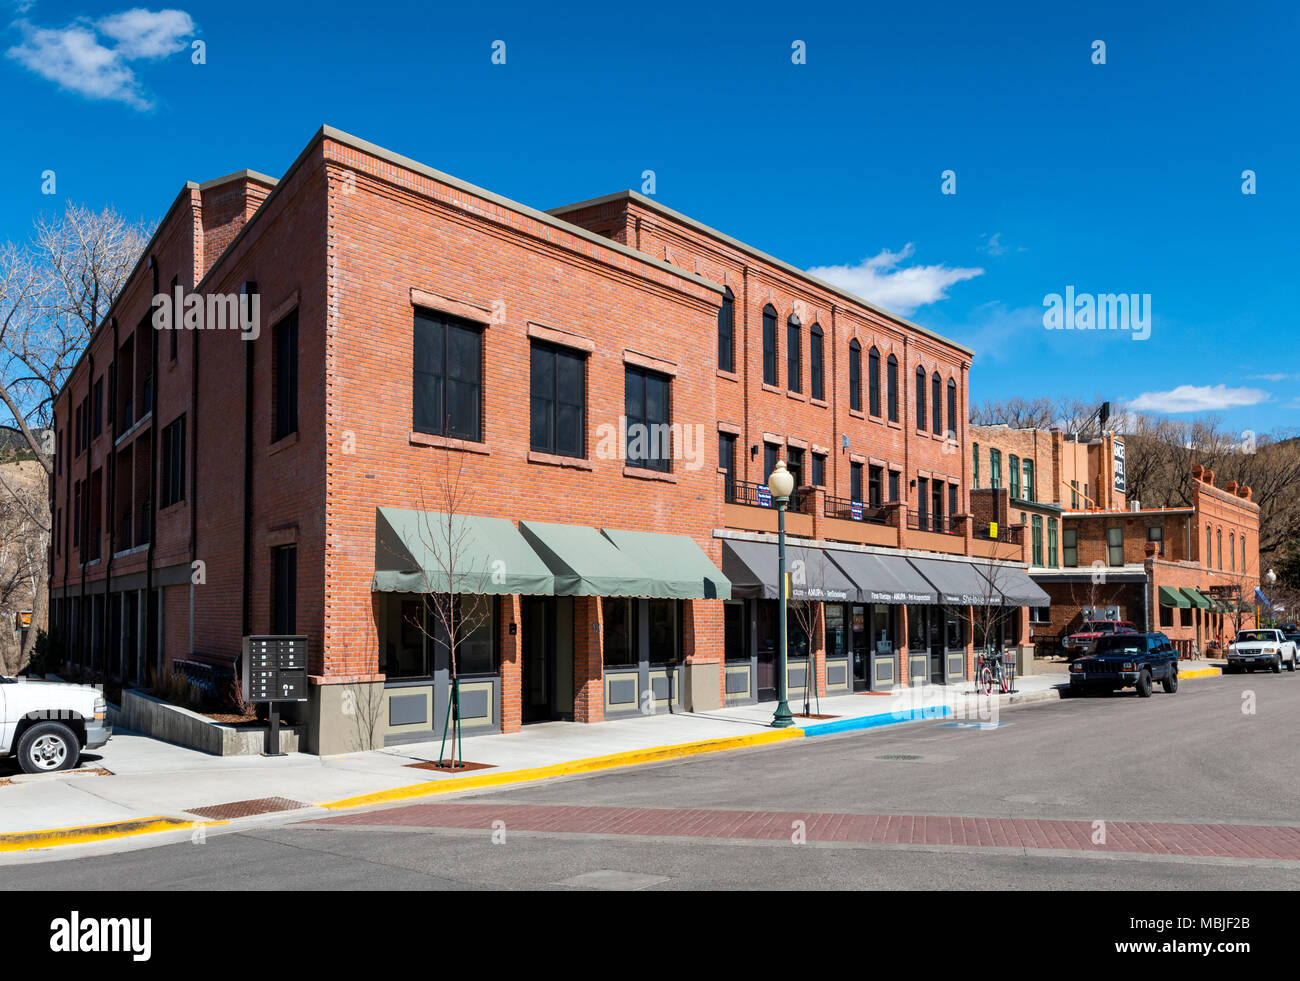 New building in historic architectural design; condominiums; shops; parking; Salida; Colorado; USA - Stock Image